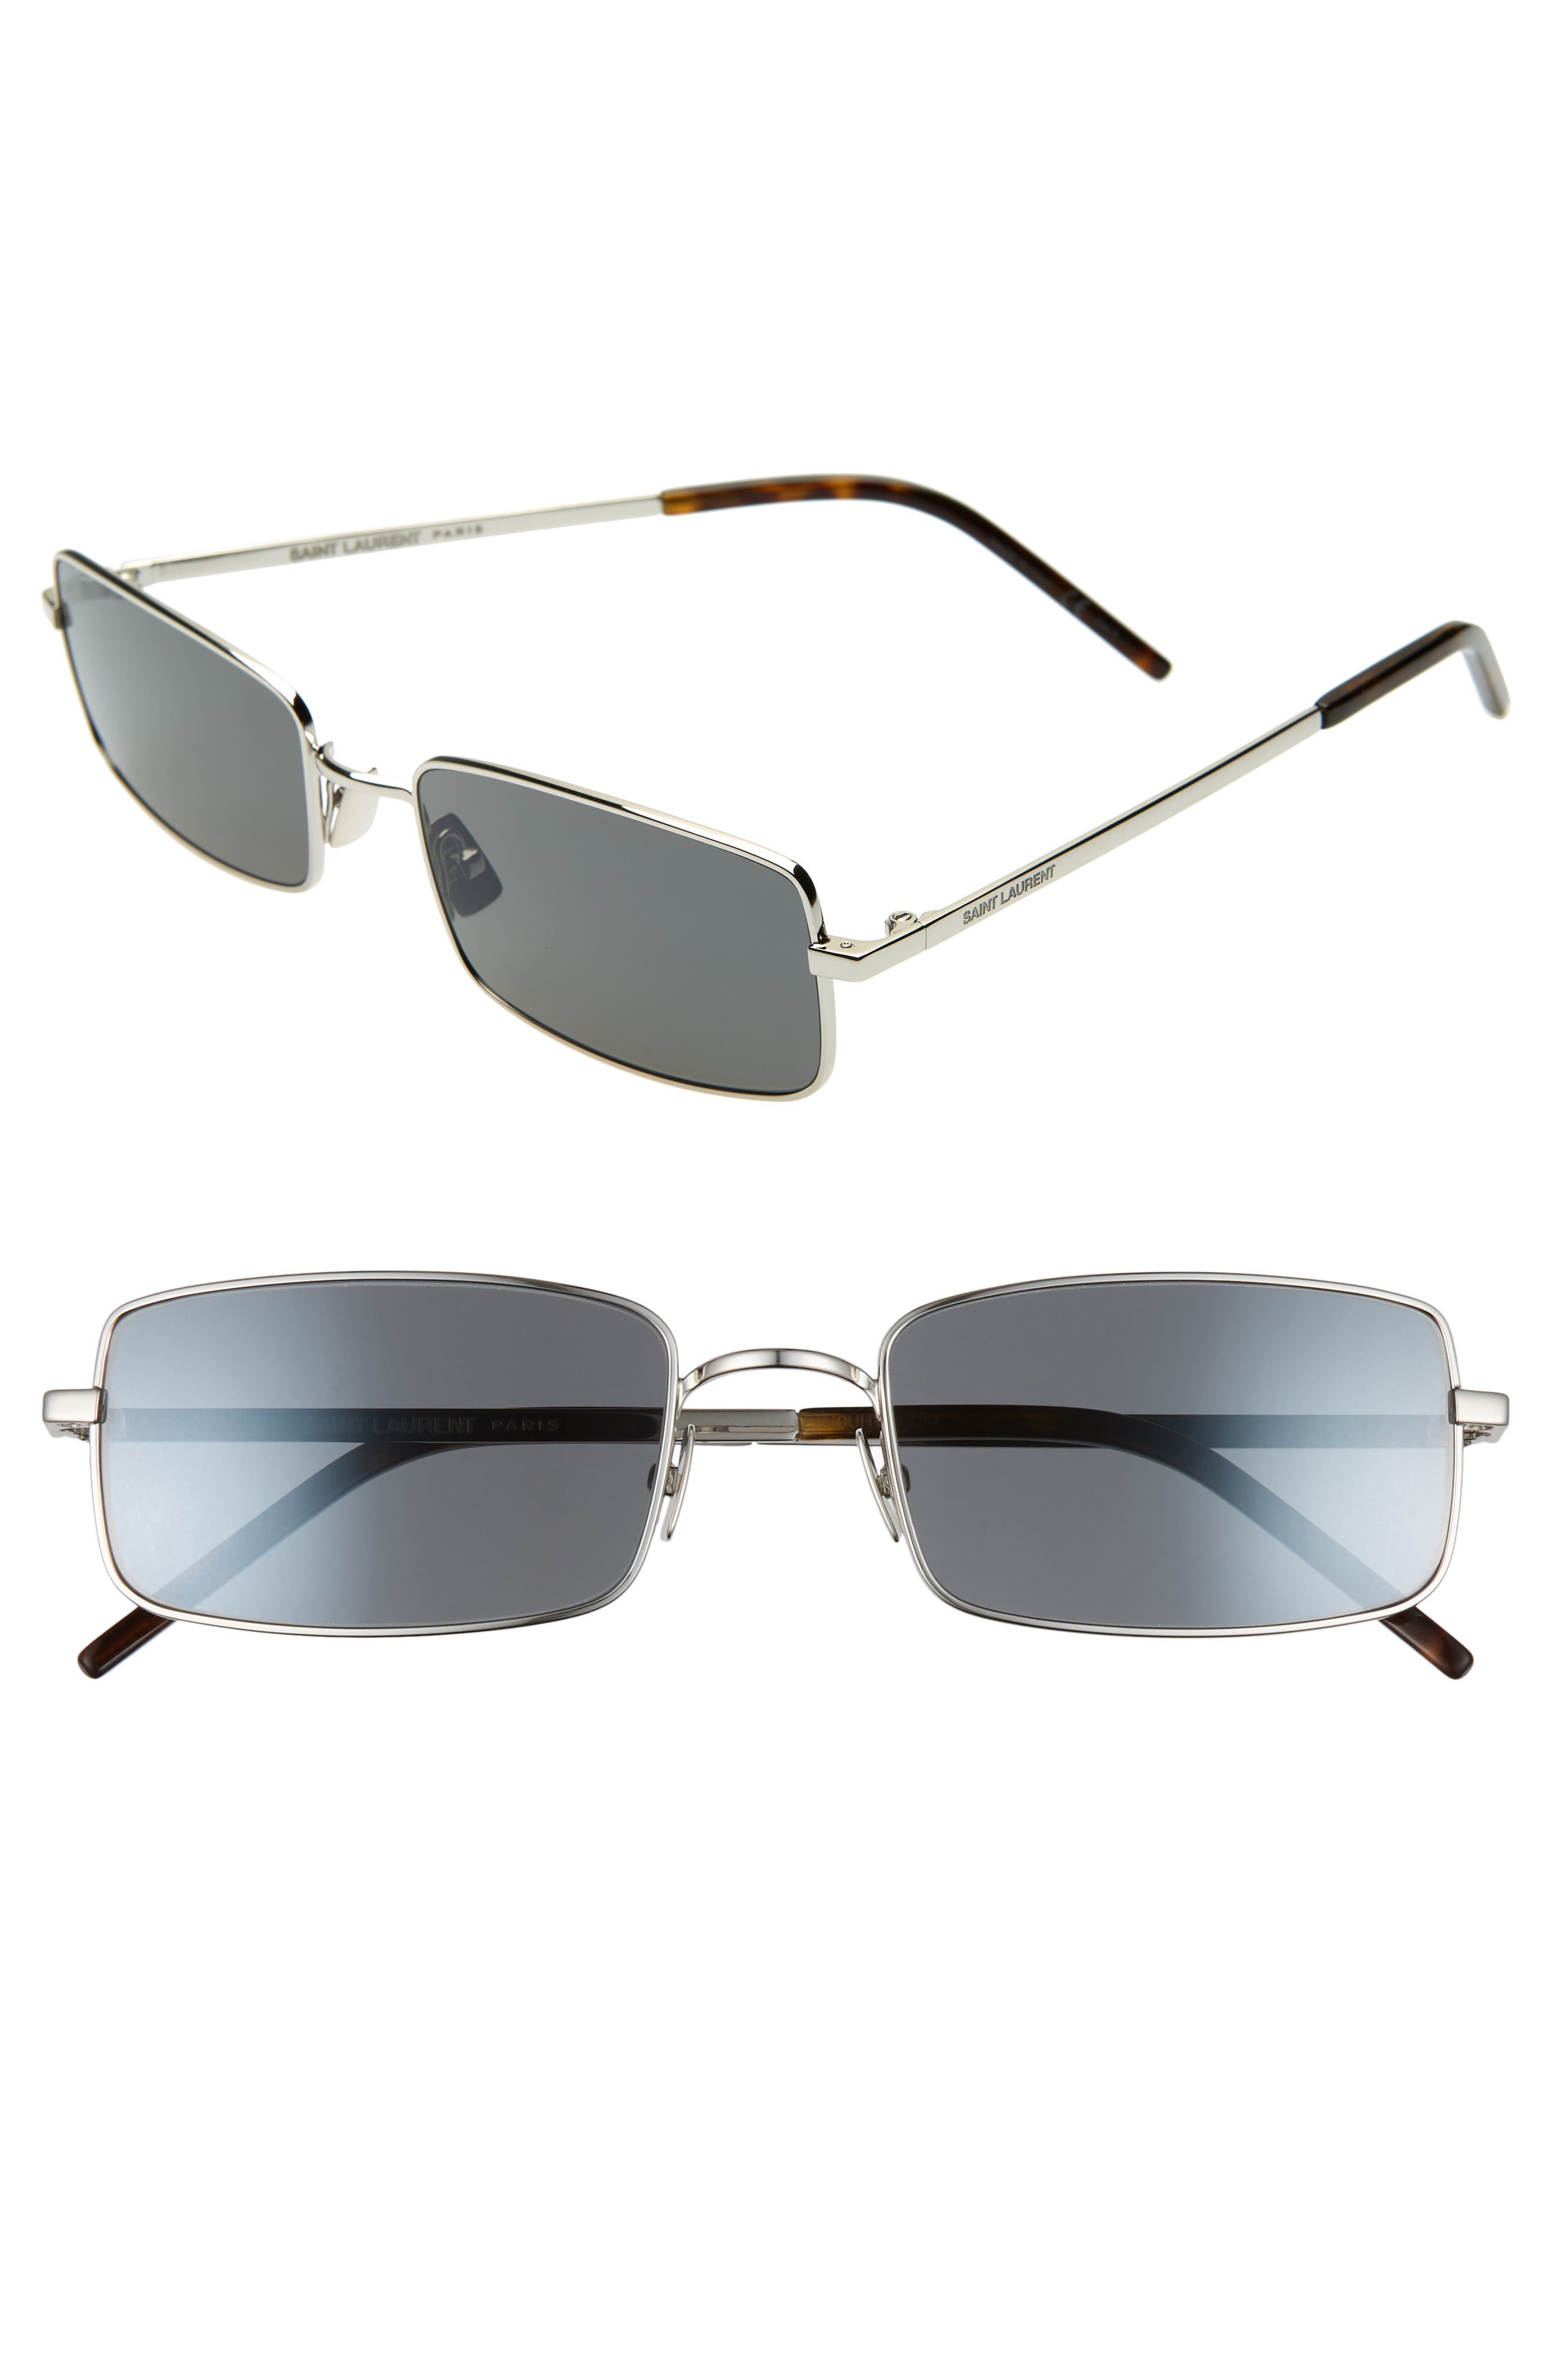 56mm Rectangle Sunglasses,                             Main thumbnail 1, color,                             SILVER/ GREY